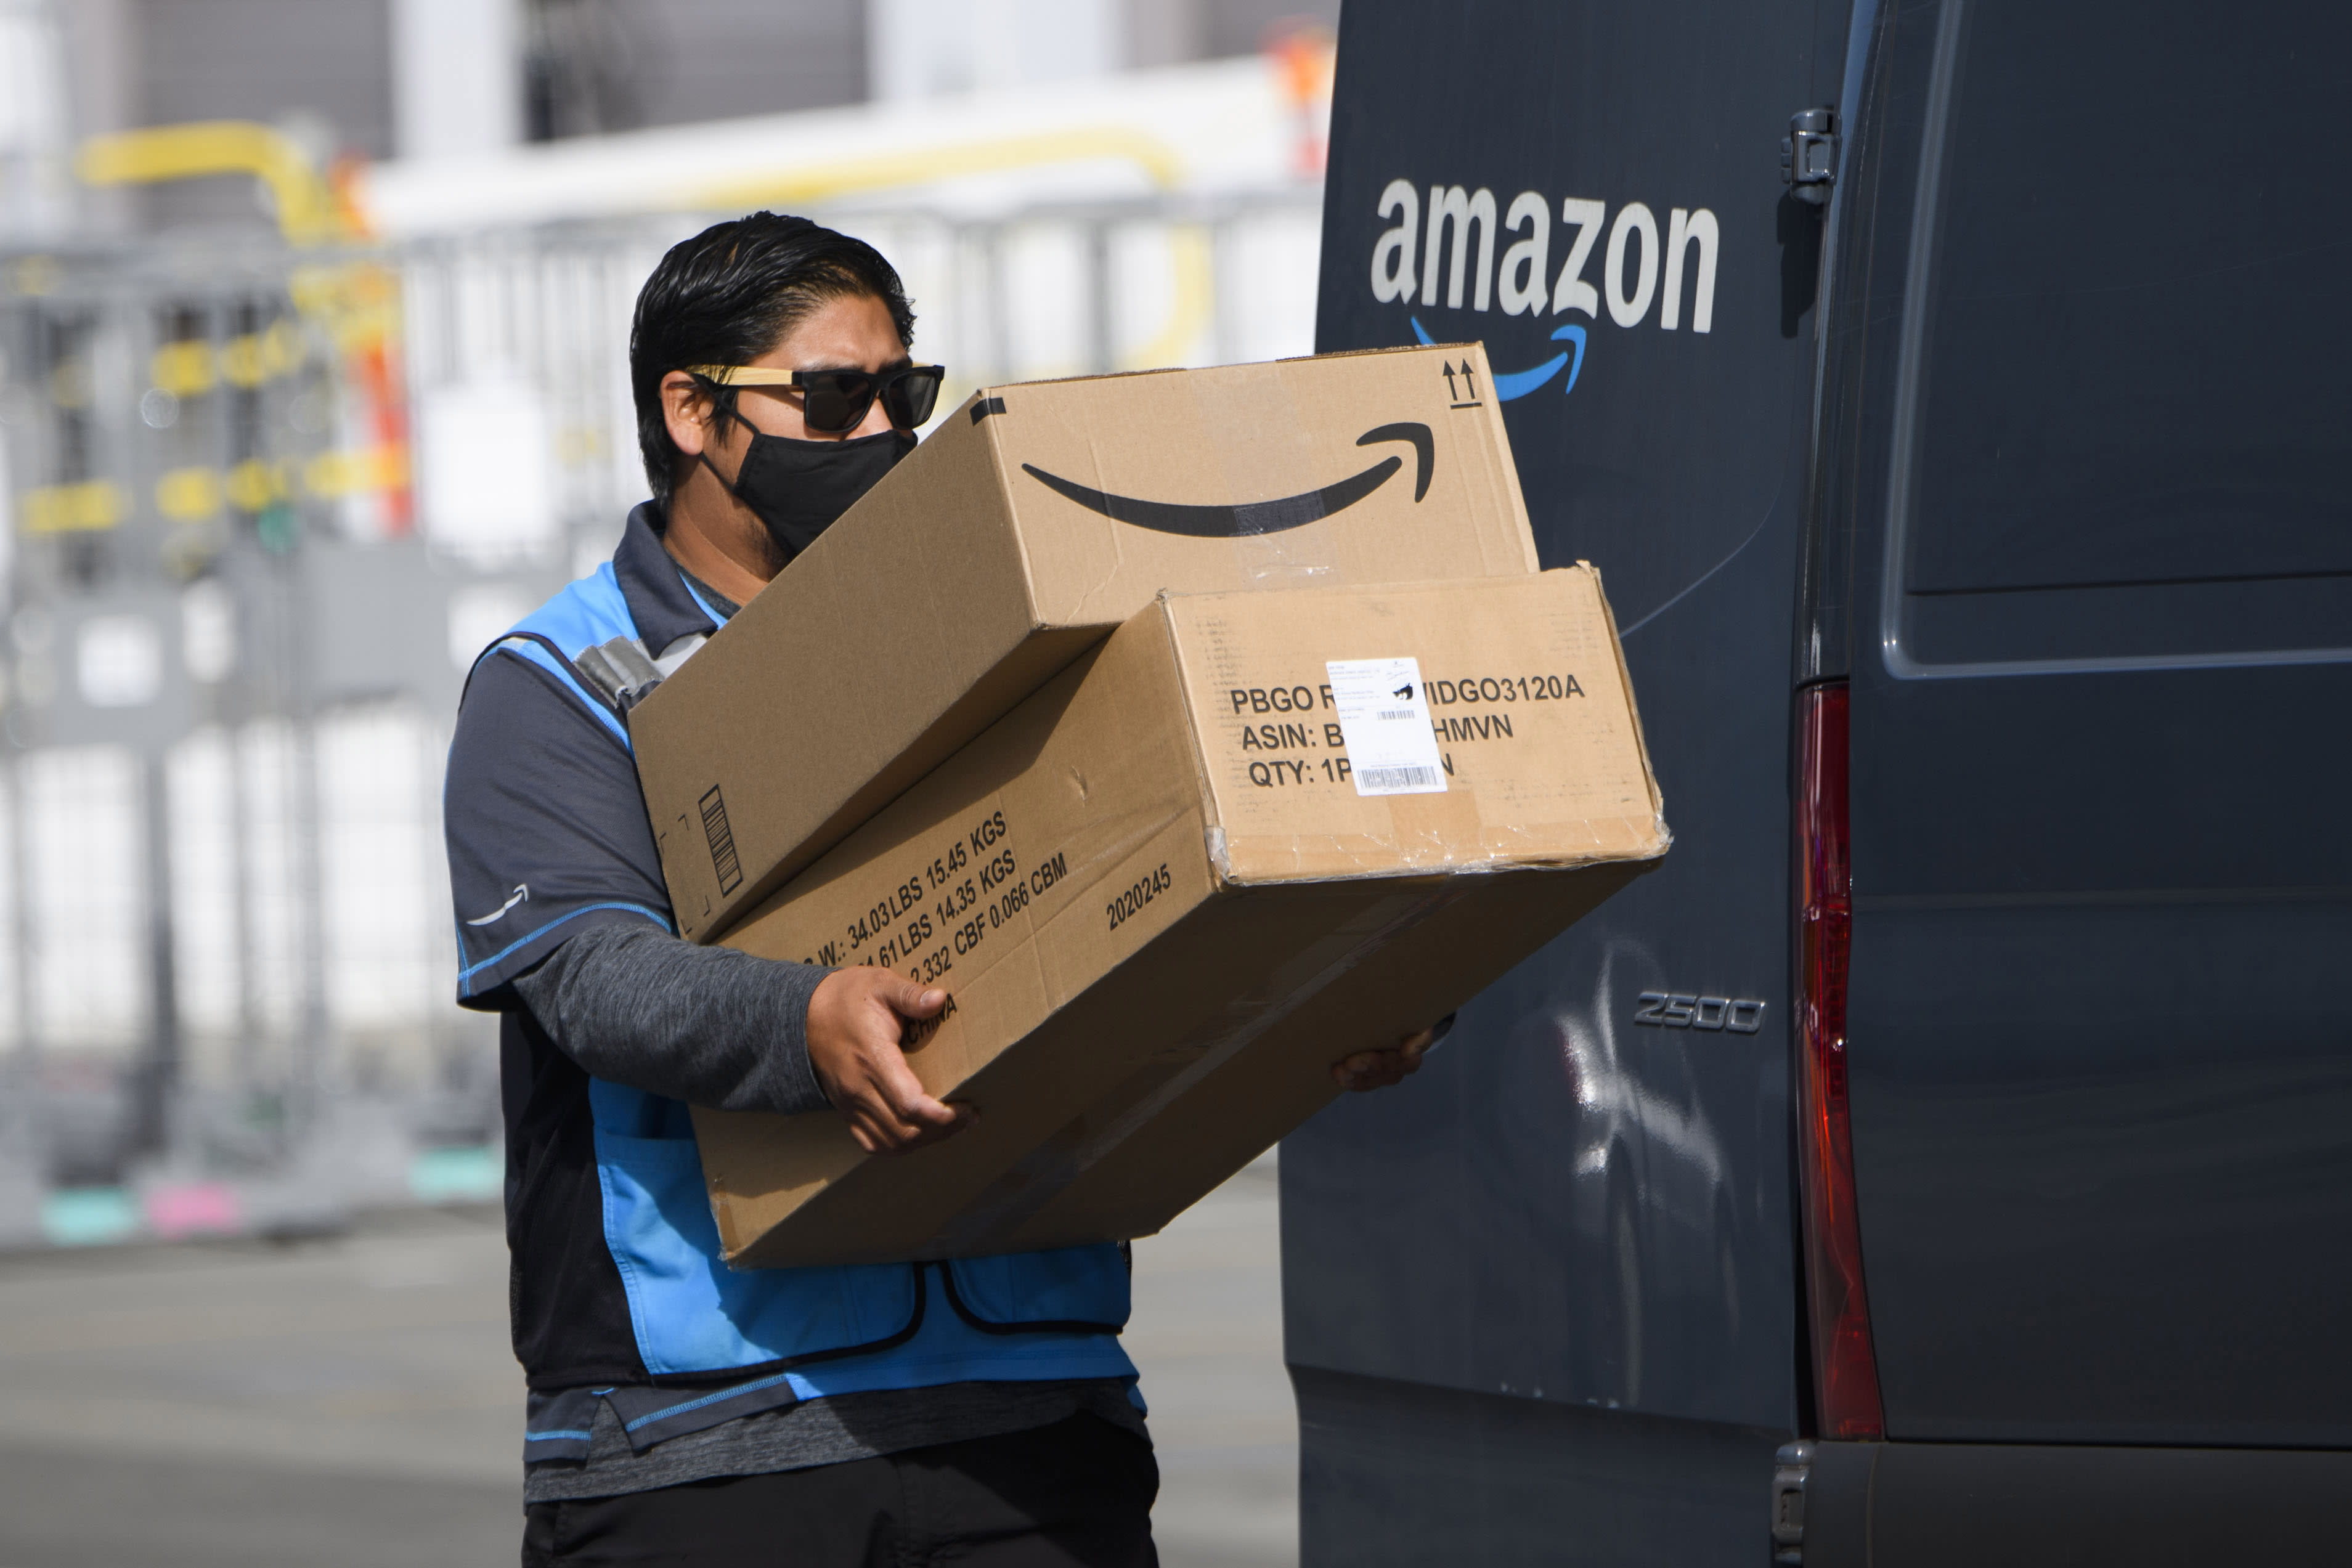 Amazon is using AI-equipped cameras in delivery vans and some drivers are concerned about privacy